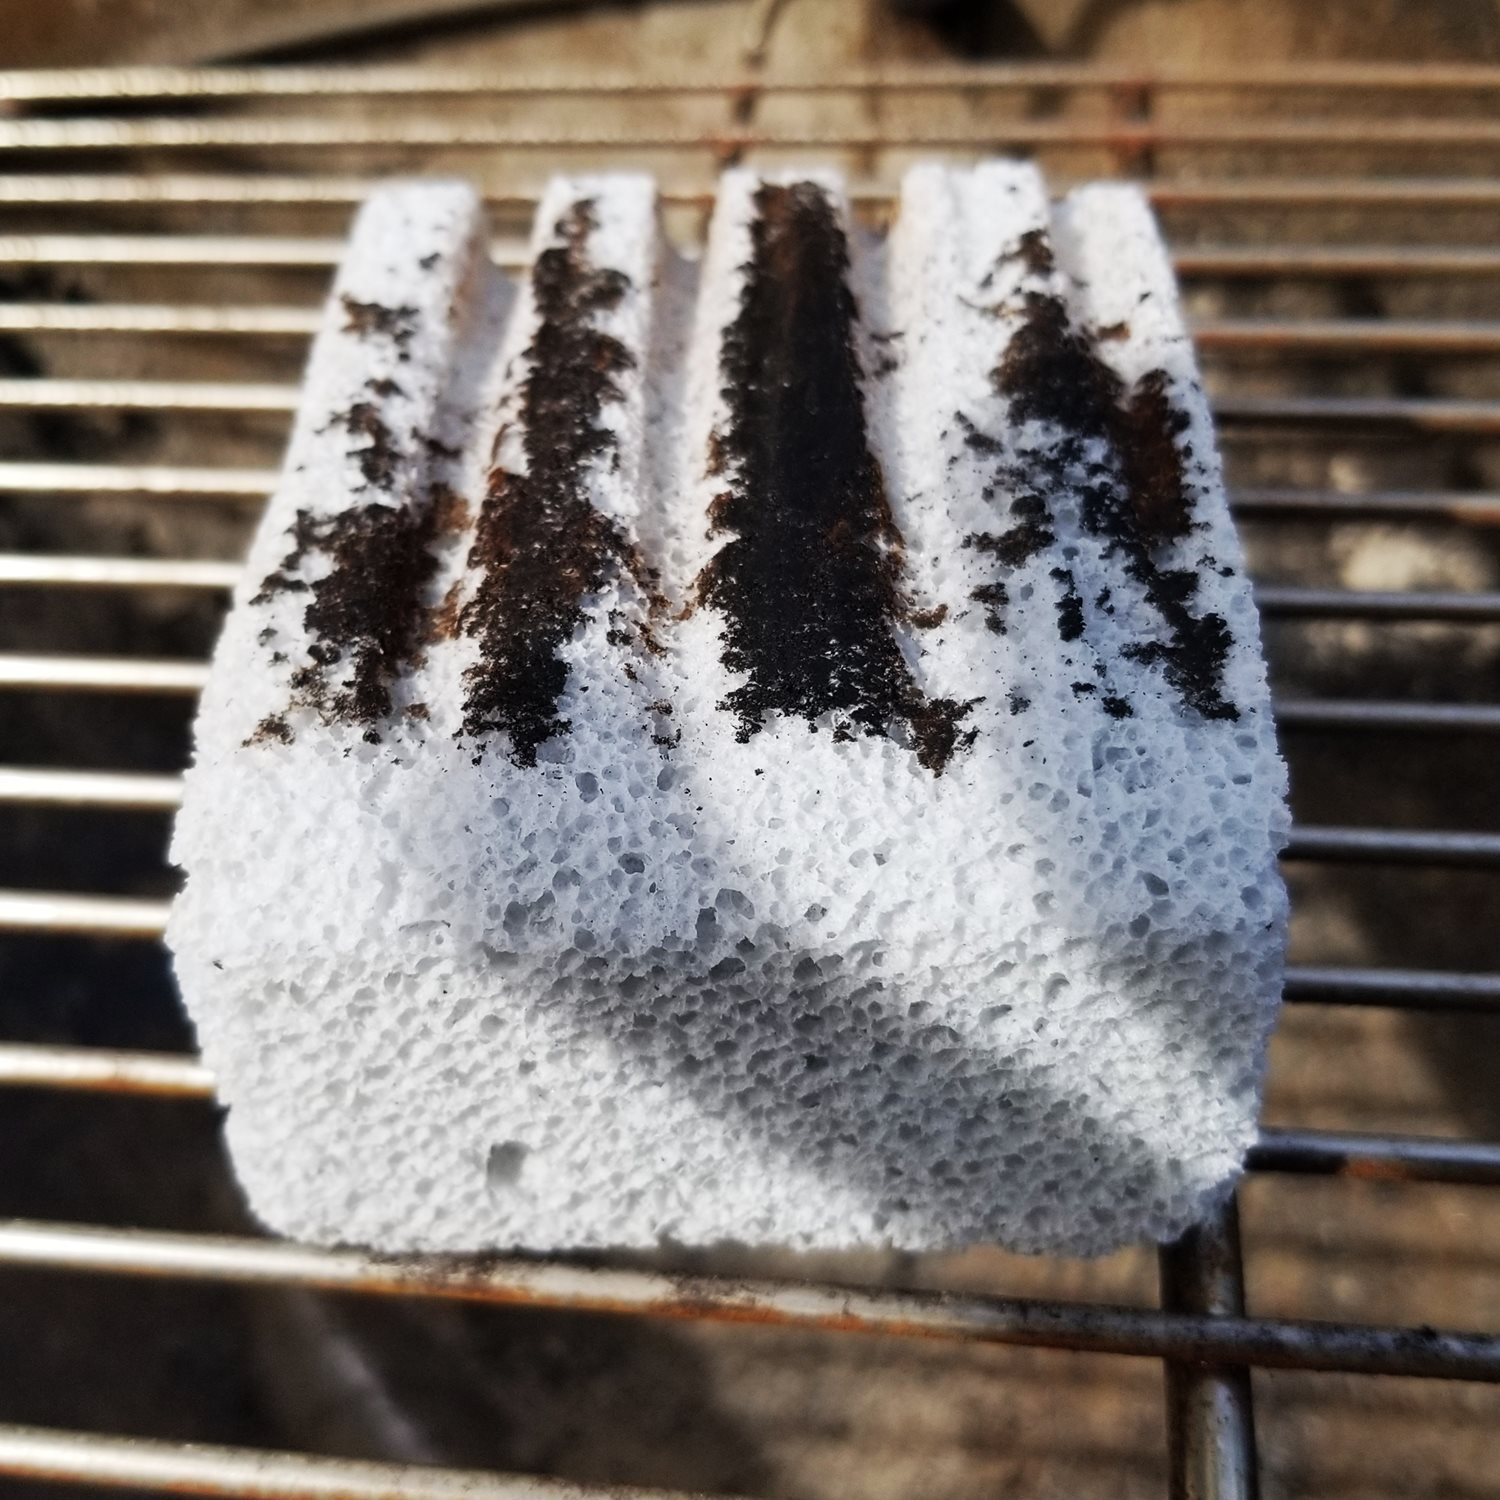 used grill stone grill cleaning block